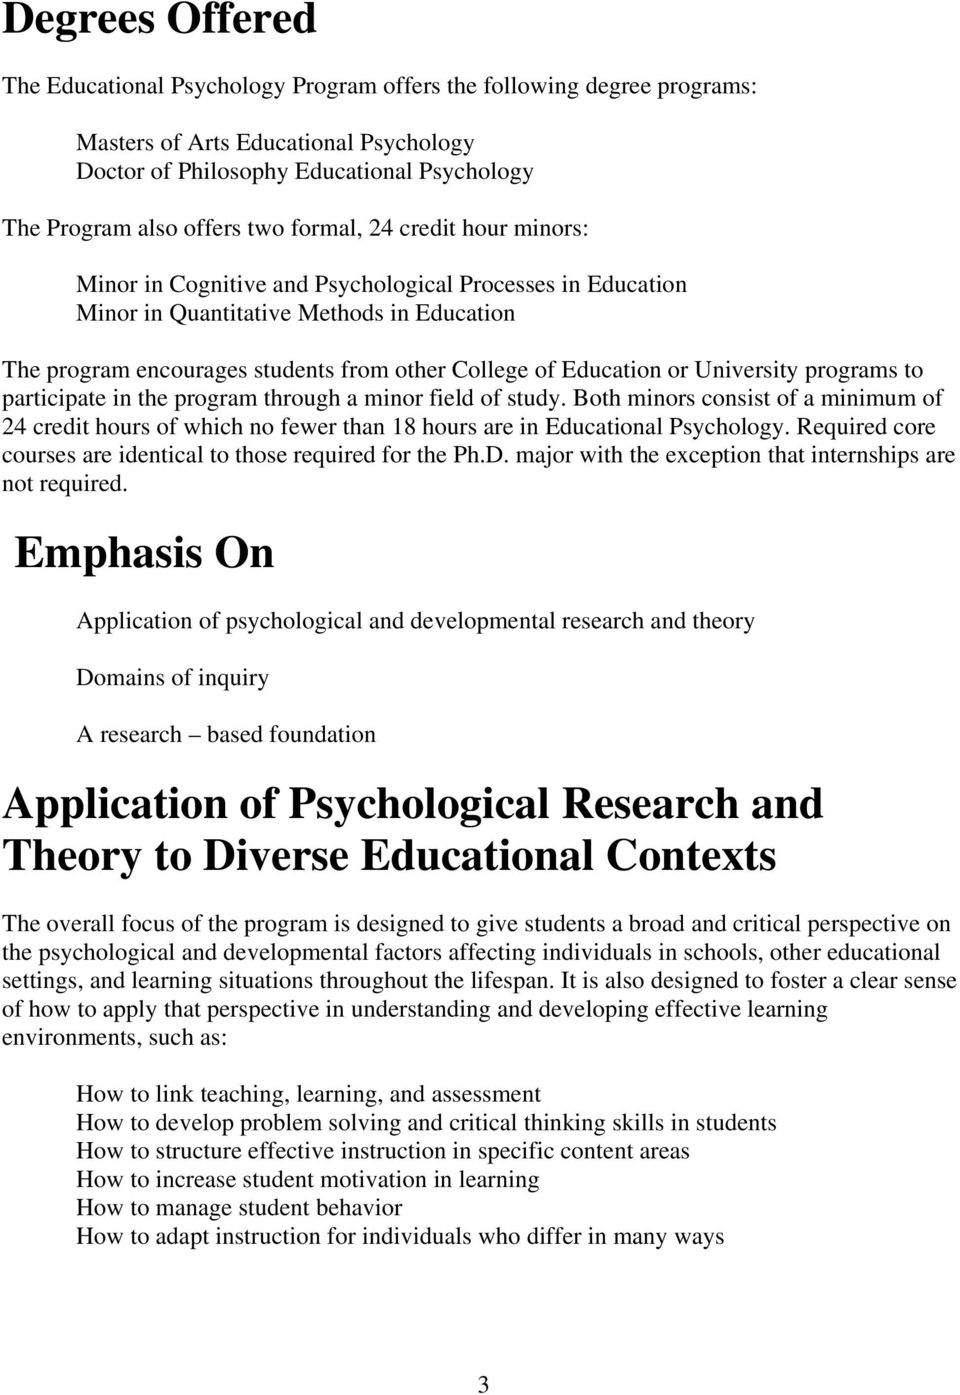 or University programs to participate in the program through a minor field of study. Both minors consist of a minimum of 24 credit hours of which no fewer than 18 hours are in Educational Psychology.